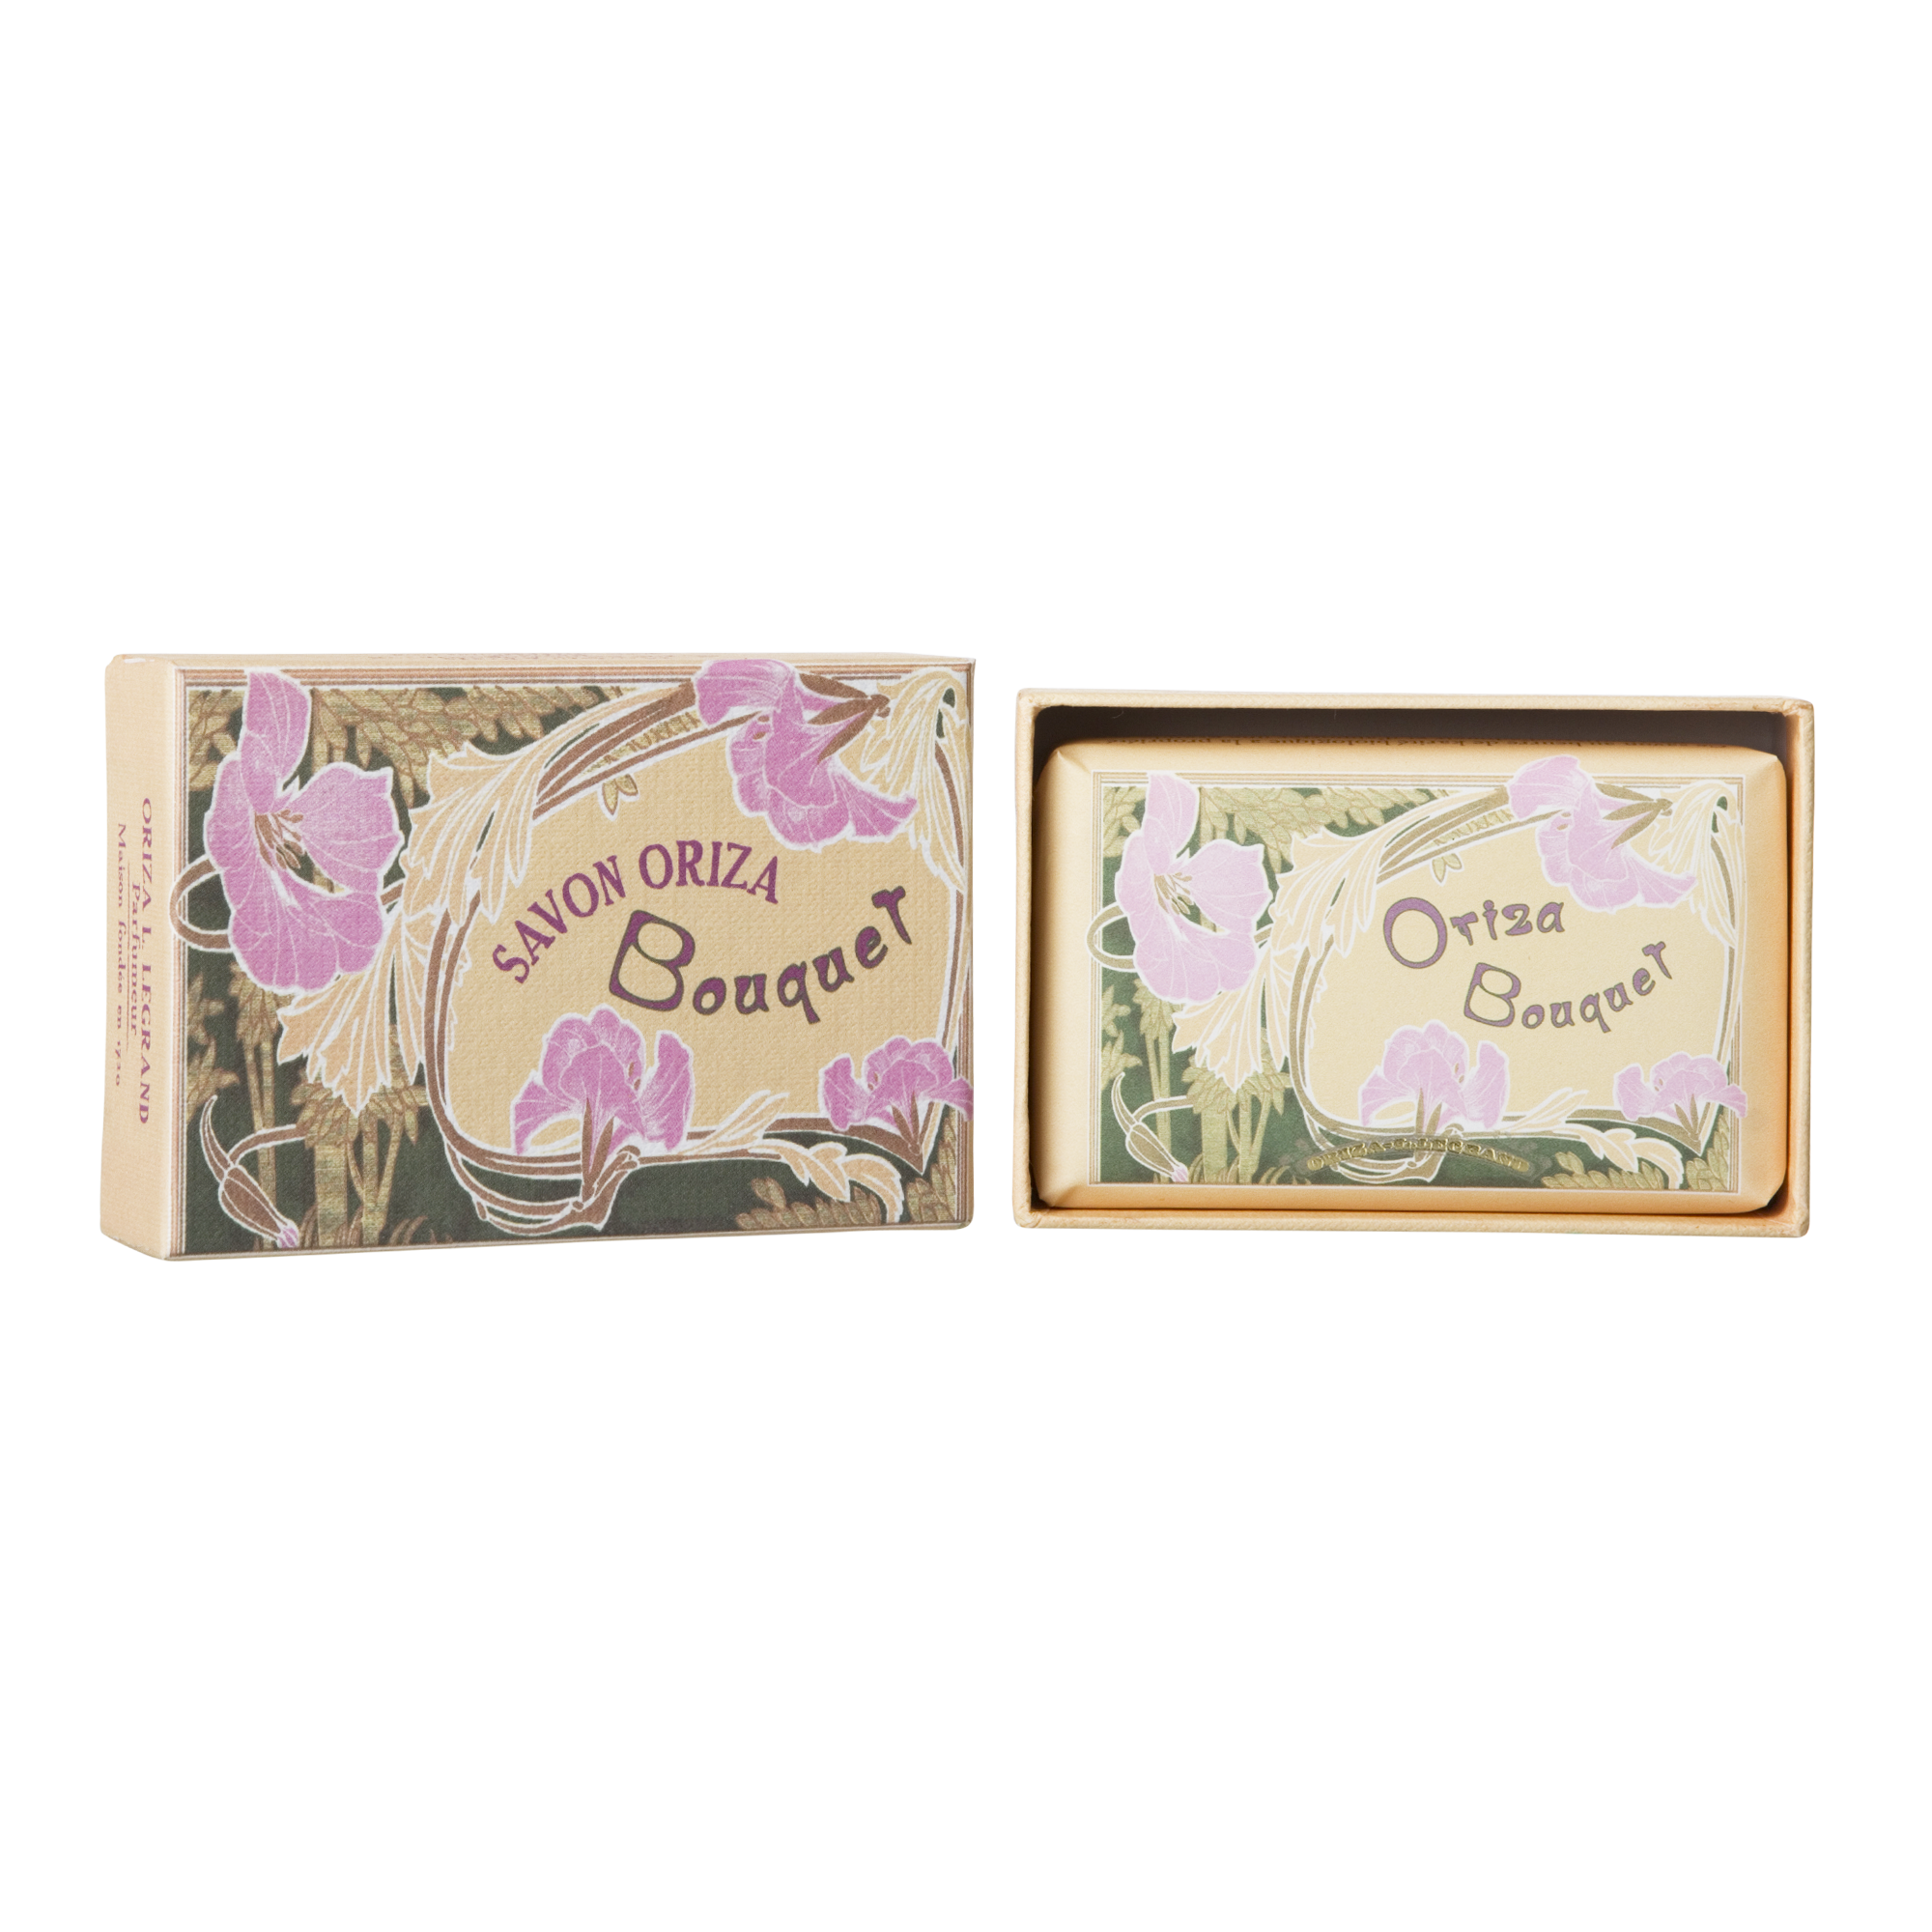 ORIZA L.LEGRAND Bouquet Soap 125 gr